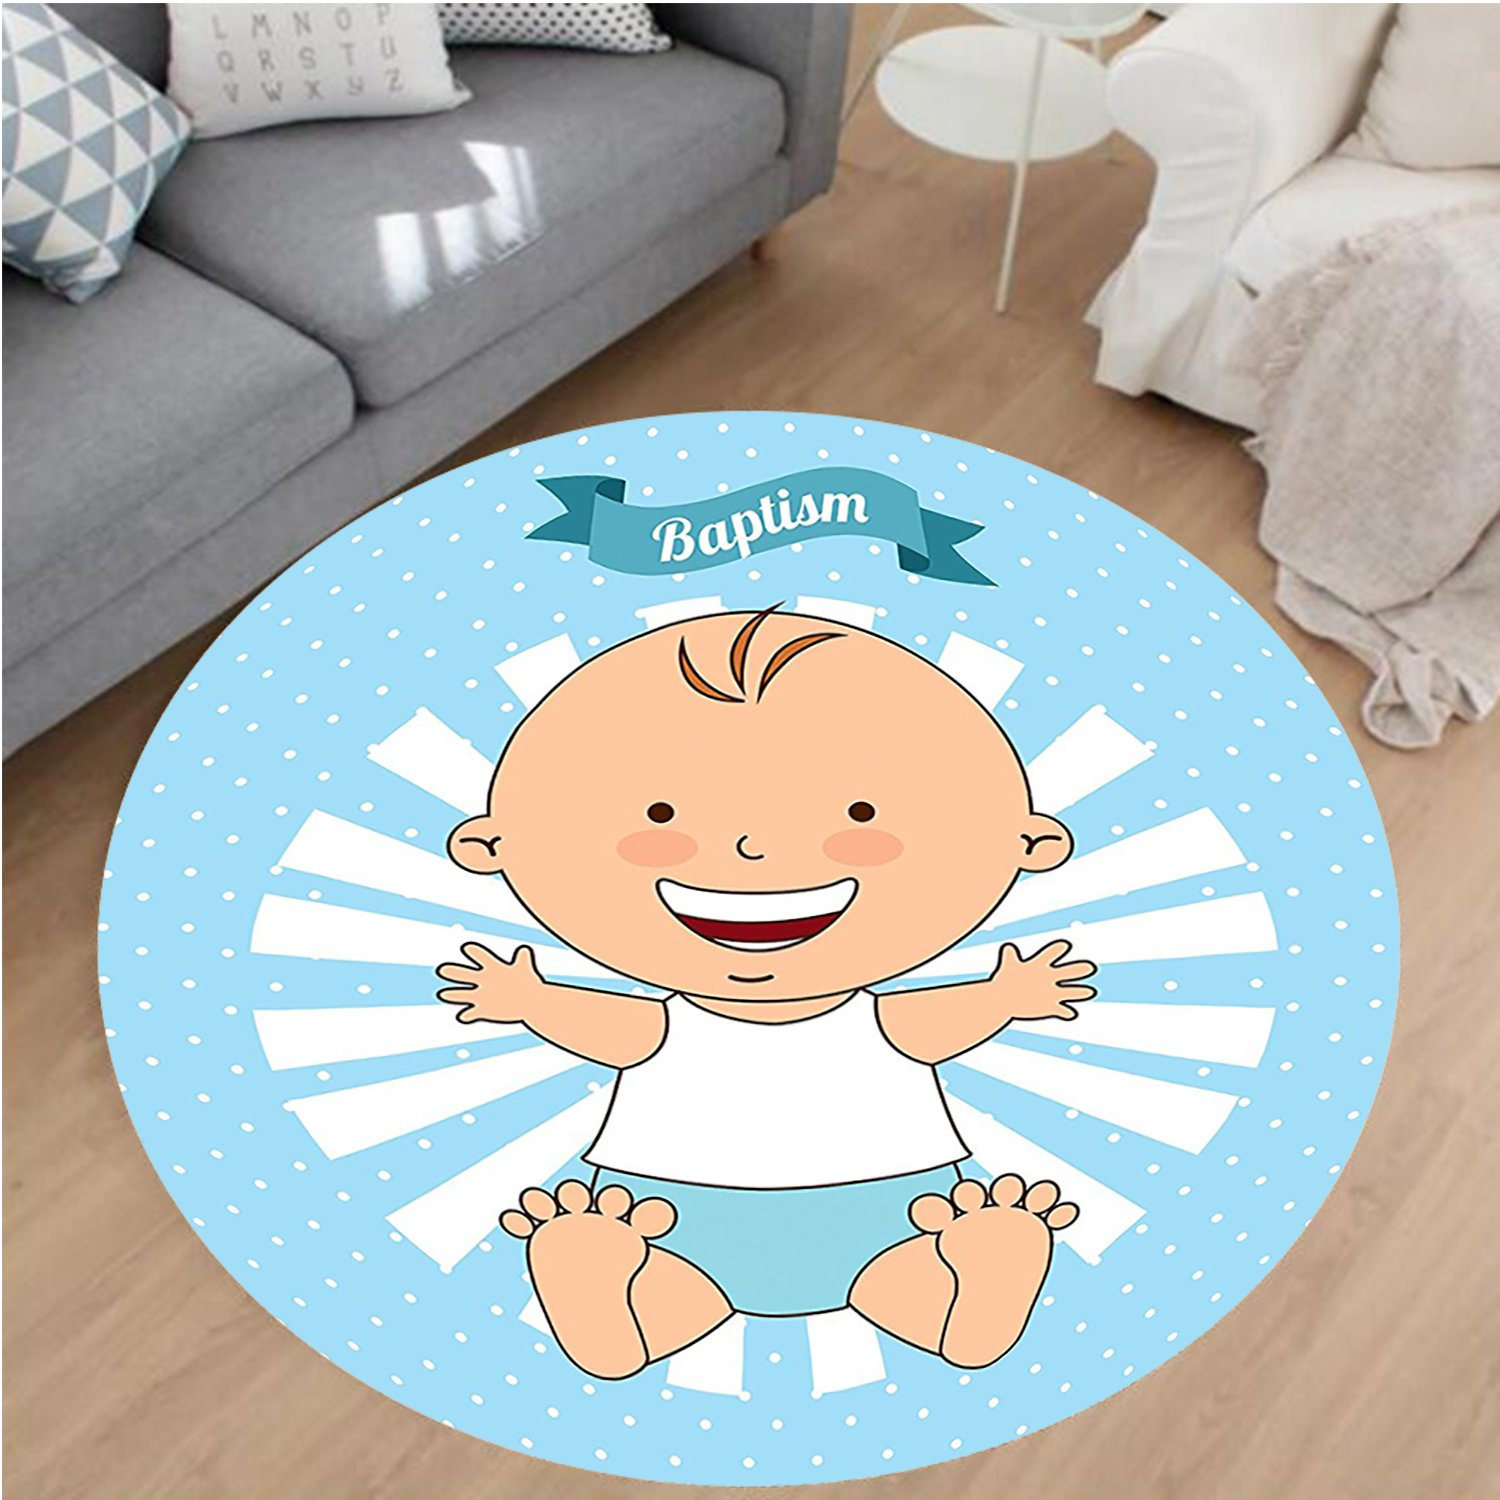 Nalahome Modern Flannel Microfiber Non-Slip Machine Washable Round Area Rug-Baptism Design Happy Boy Christening Striped Dotted Background Christian Religion Theme area rugs Home Decor-Round 67'' by Nalahome